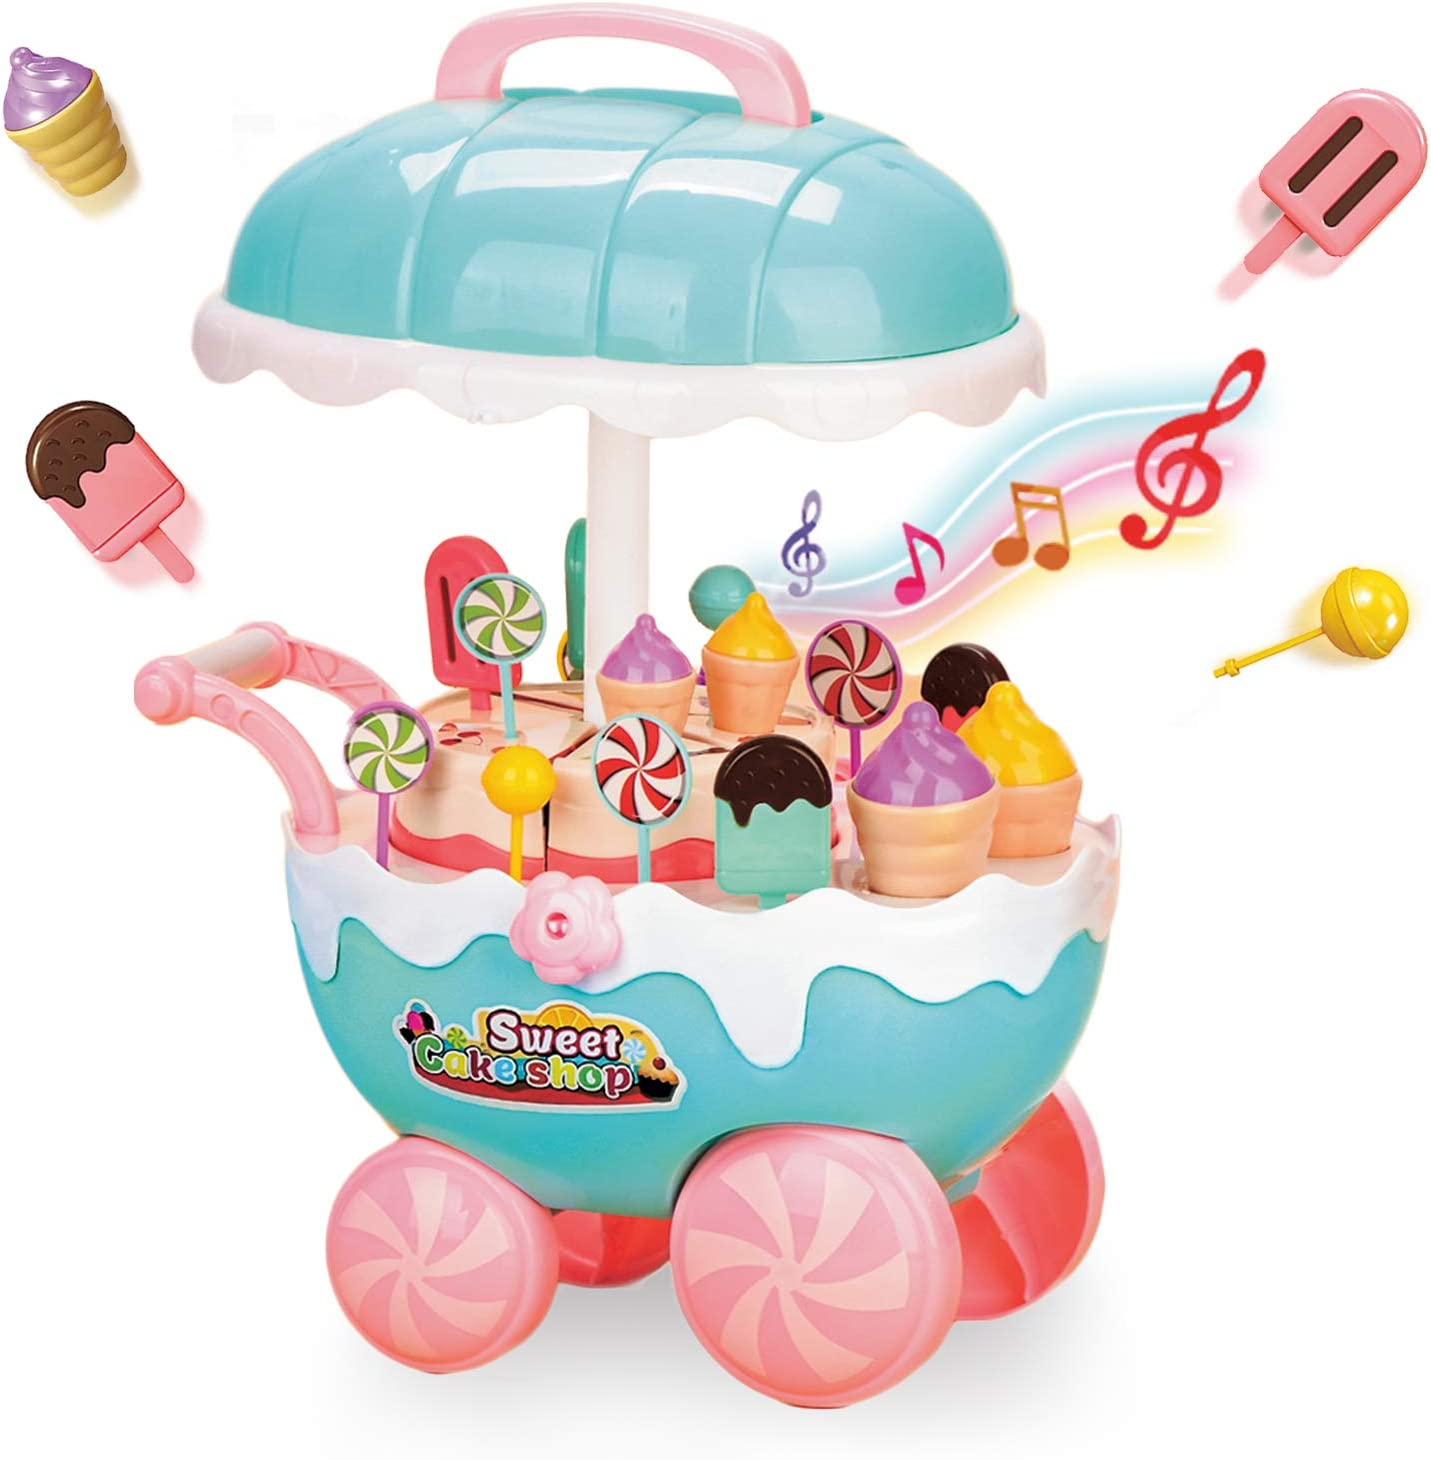 YOUTHZH Ice Cream Candy Cart Educational Pretend Play Food with Music and Lighting Educational Trolley Table Toys Learning Mini Cart Food Truck Great Gift for Girls and Boys Ages 2 - 8 Years Old